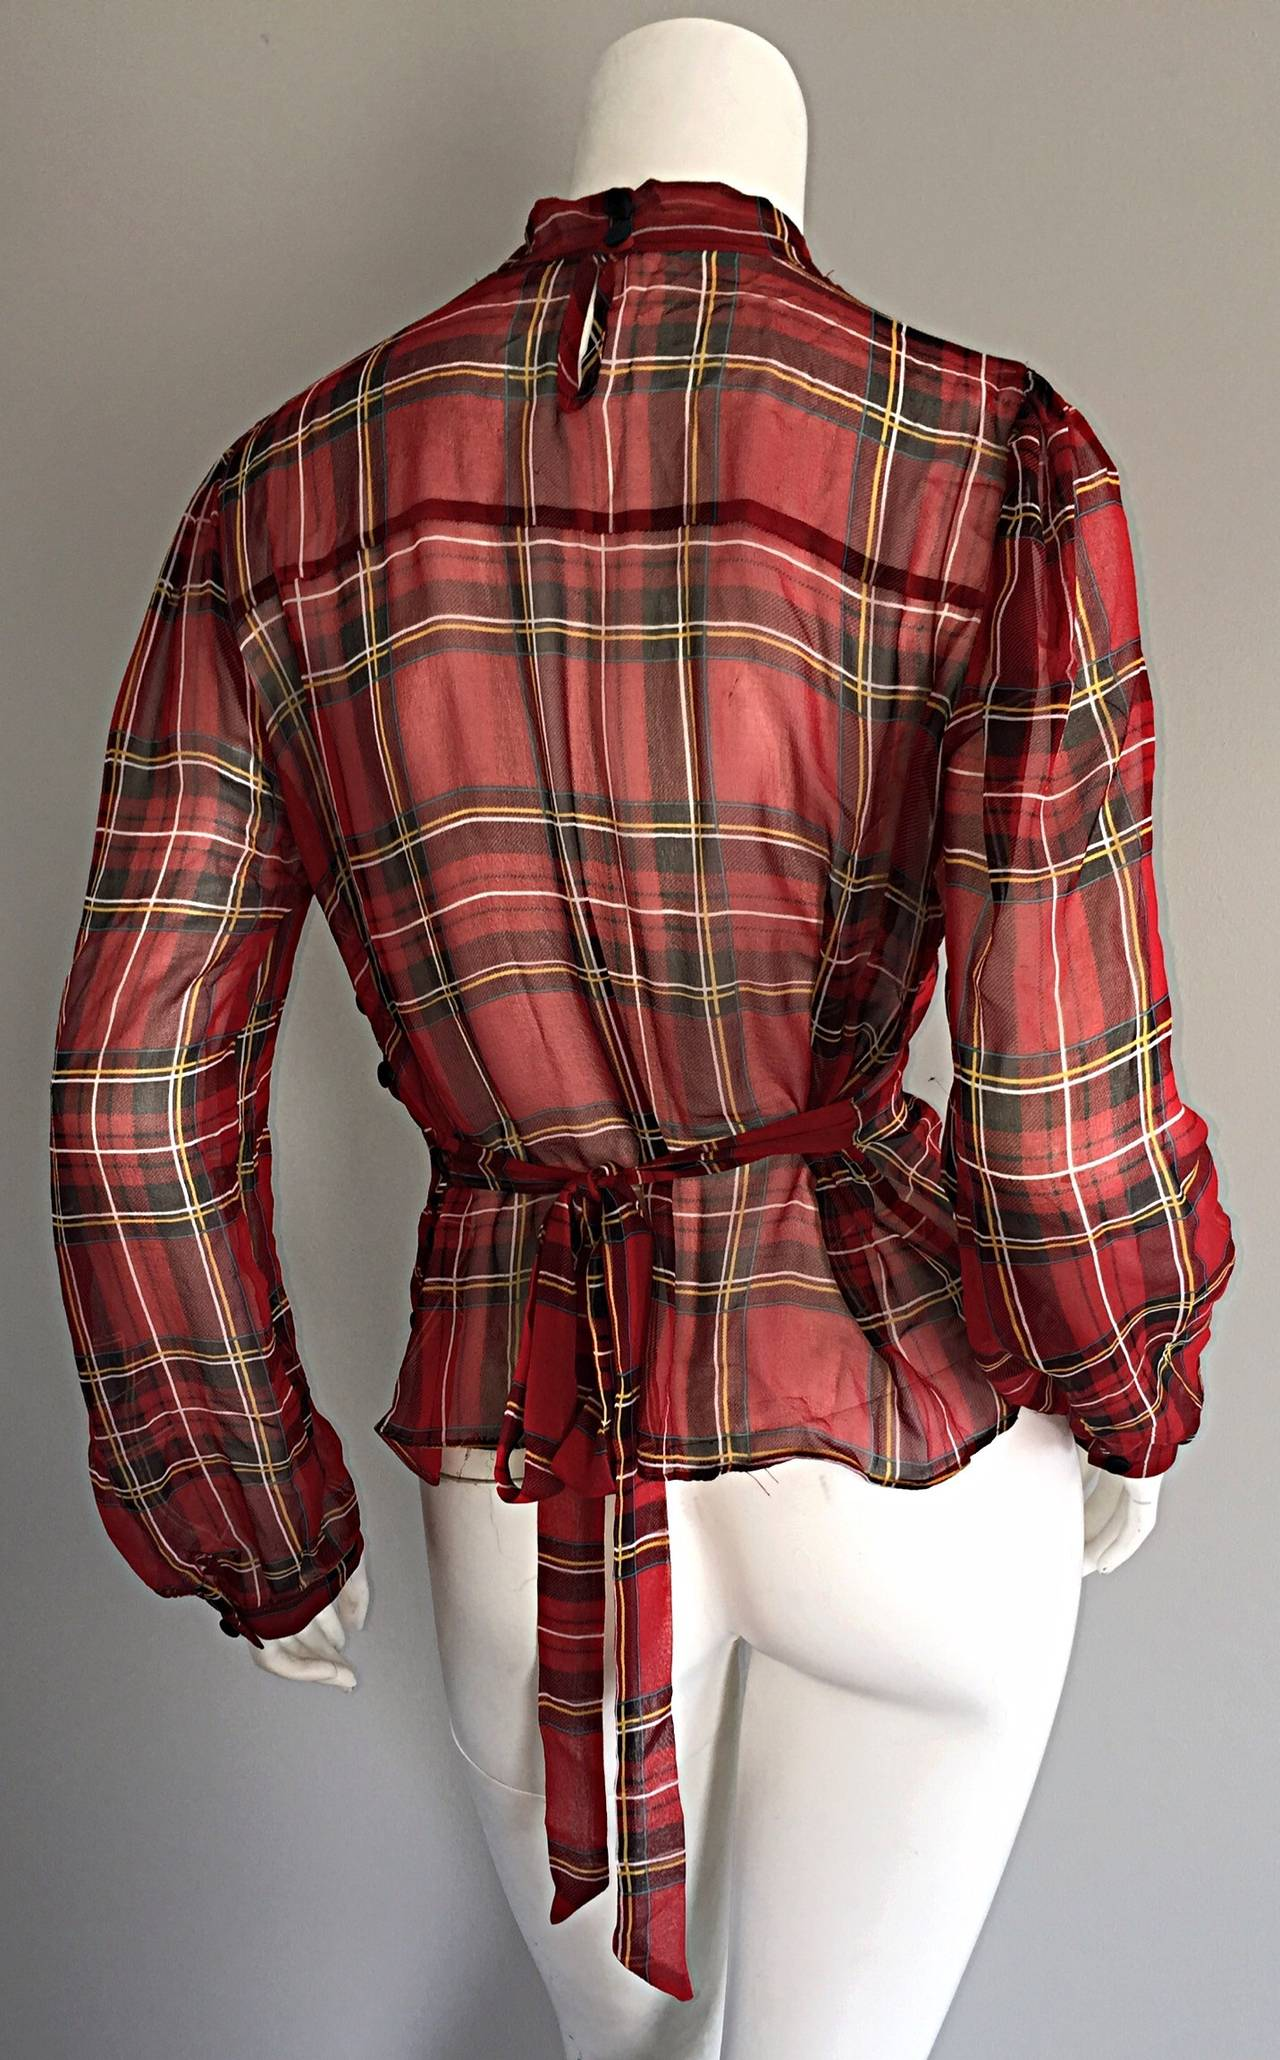 1990s Vintage Betsey Johnson Tartan Plaid Tuxedo Ruffle Silk Blouse w/ Bow In Excellent Condition For Sale In San Francisco, CA